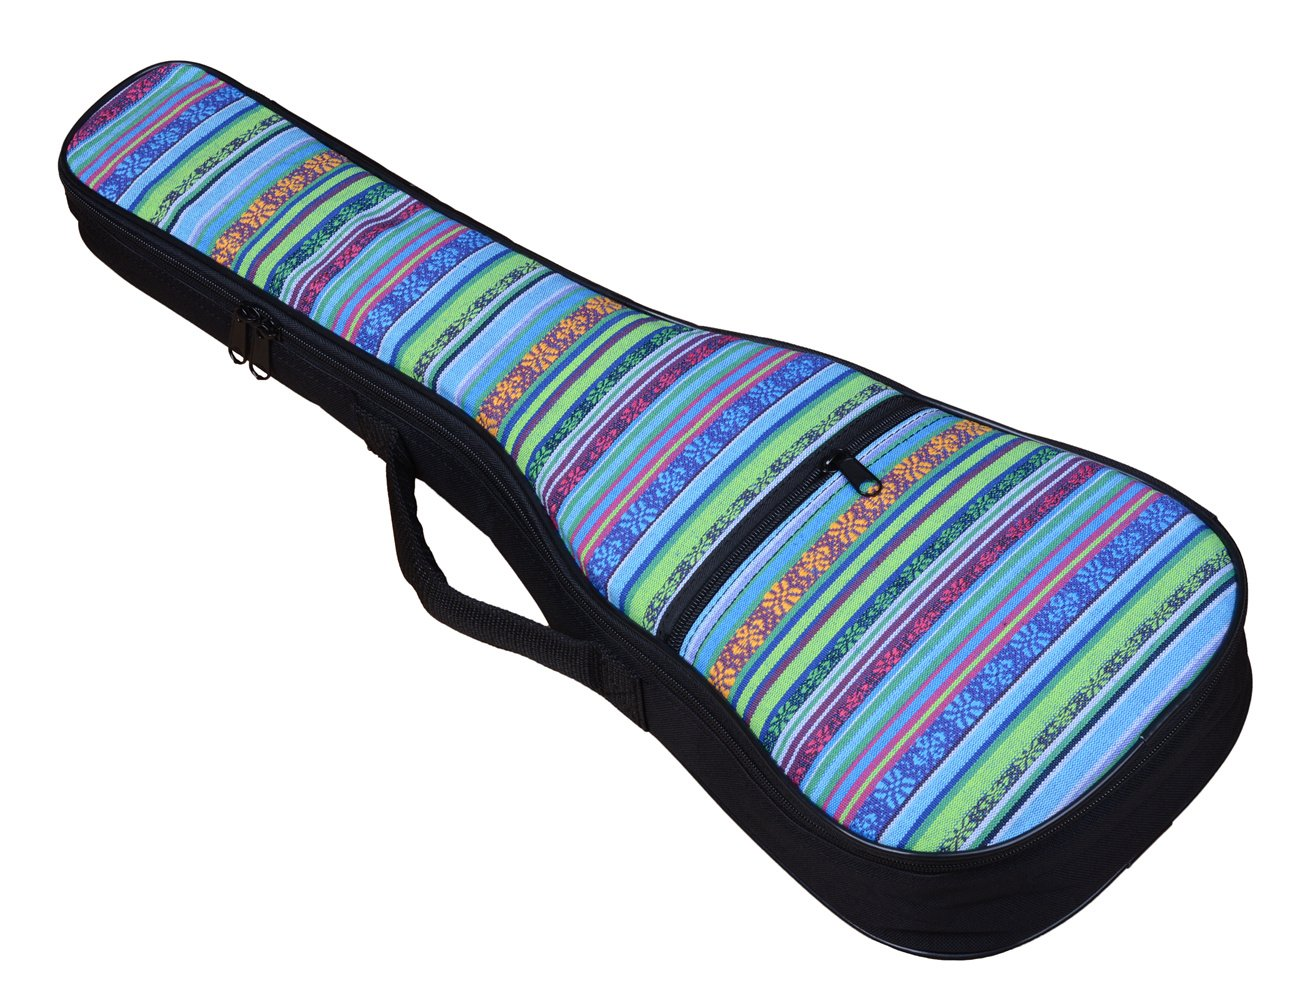 23//24 in, Geometry HOT SEAL 10MM Sponge Padding Durable Colorful ukulele Case Bag with Storage